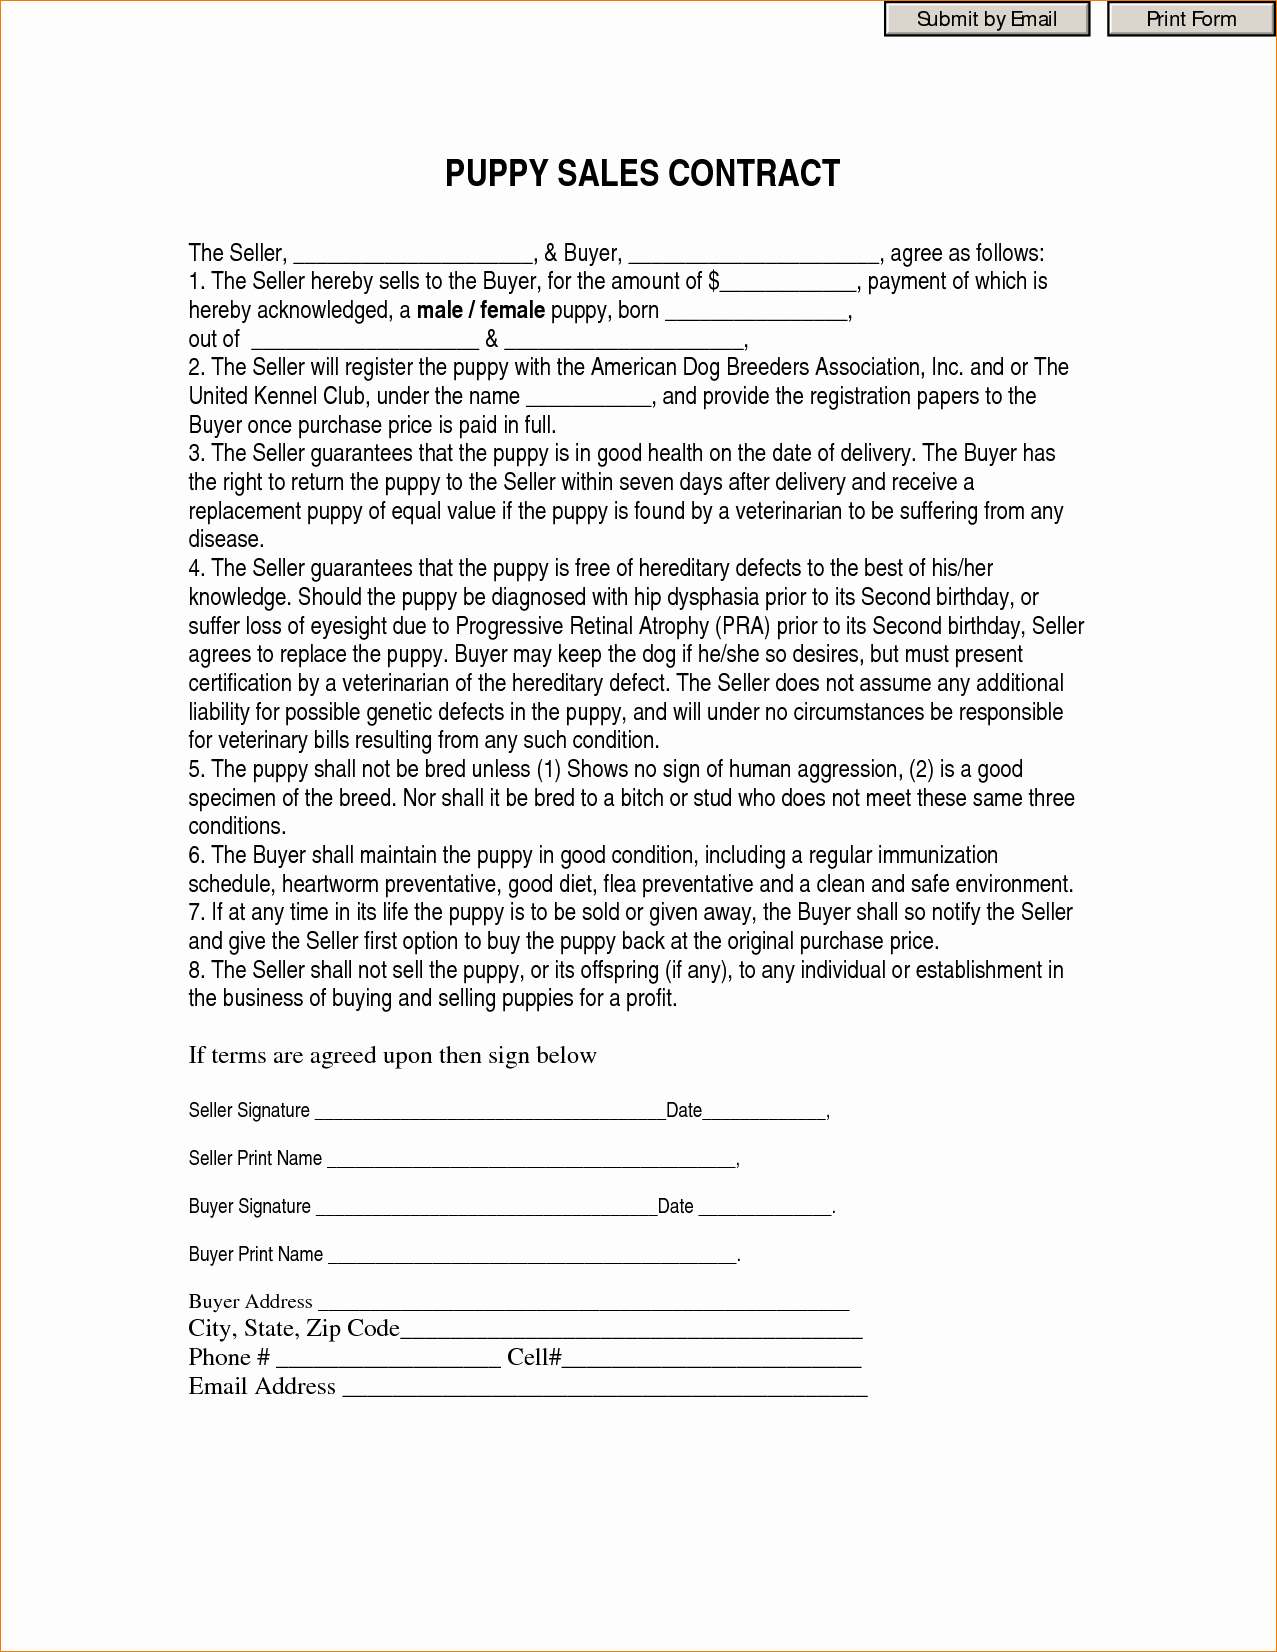 Puppy Sale Contract Template Best Of Contract Puppy Sales Contract form